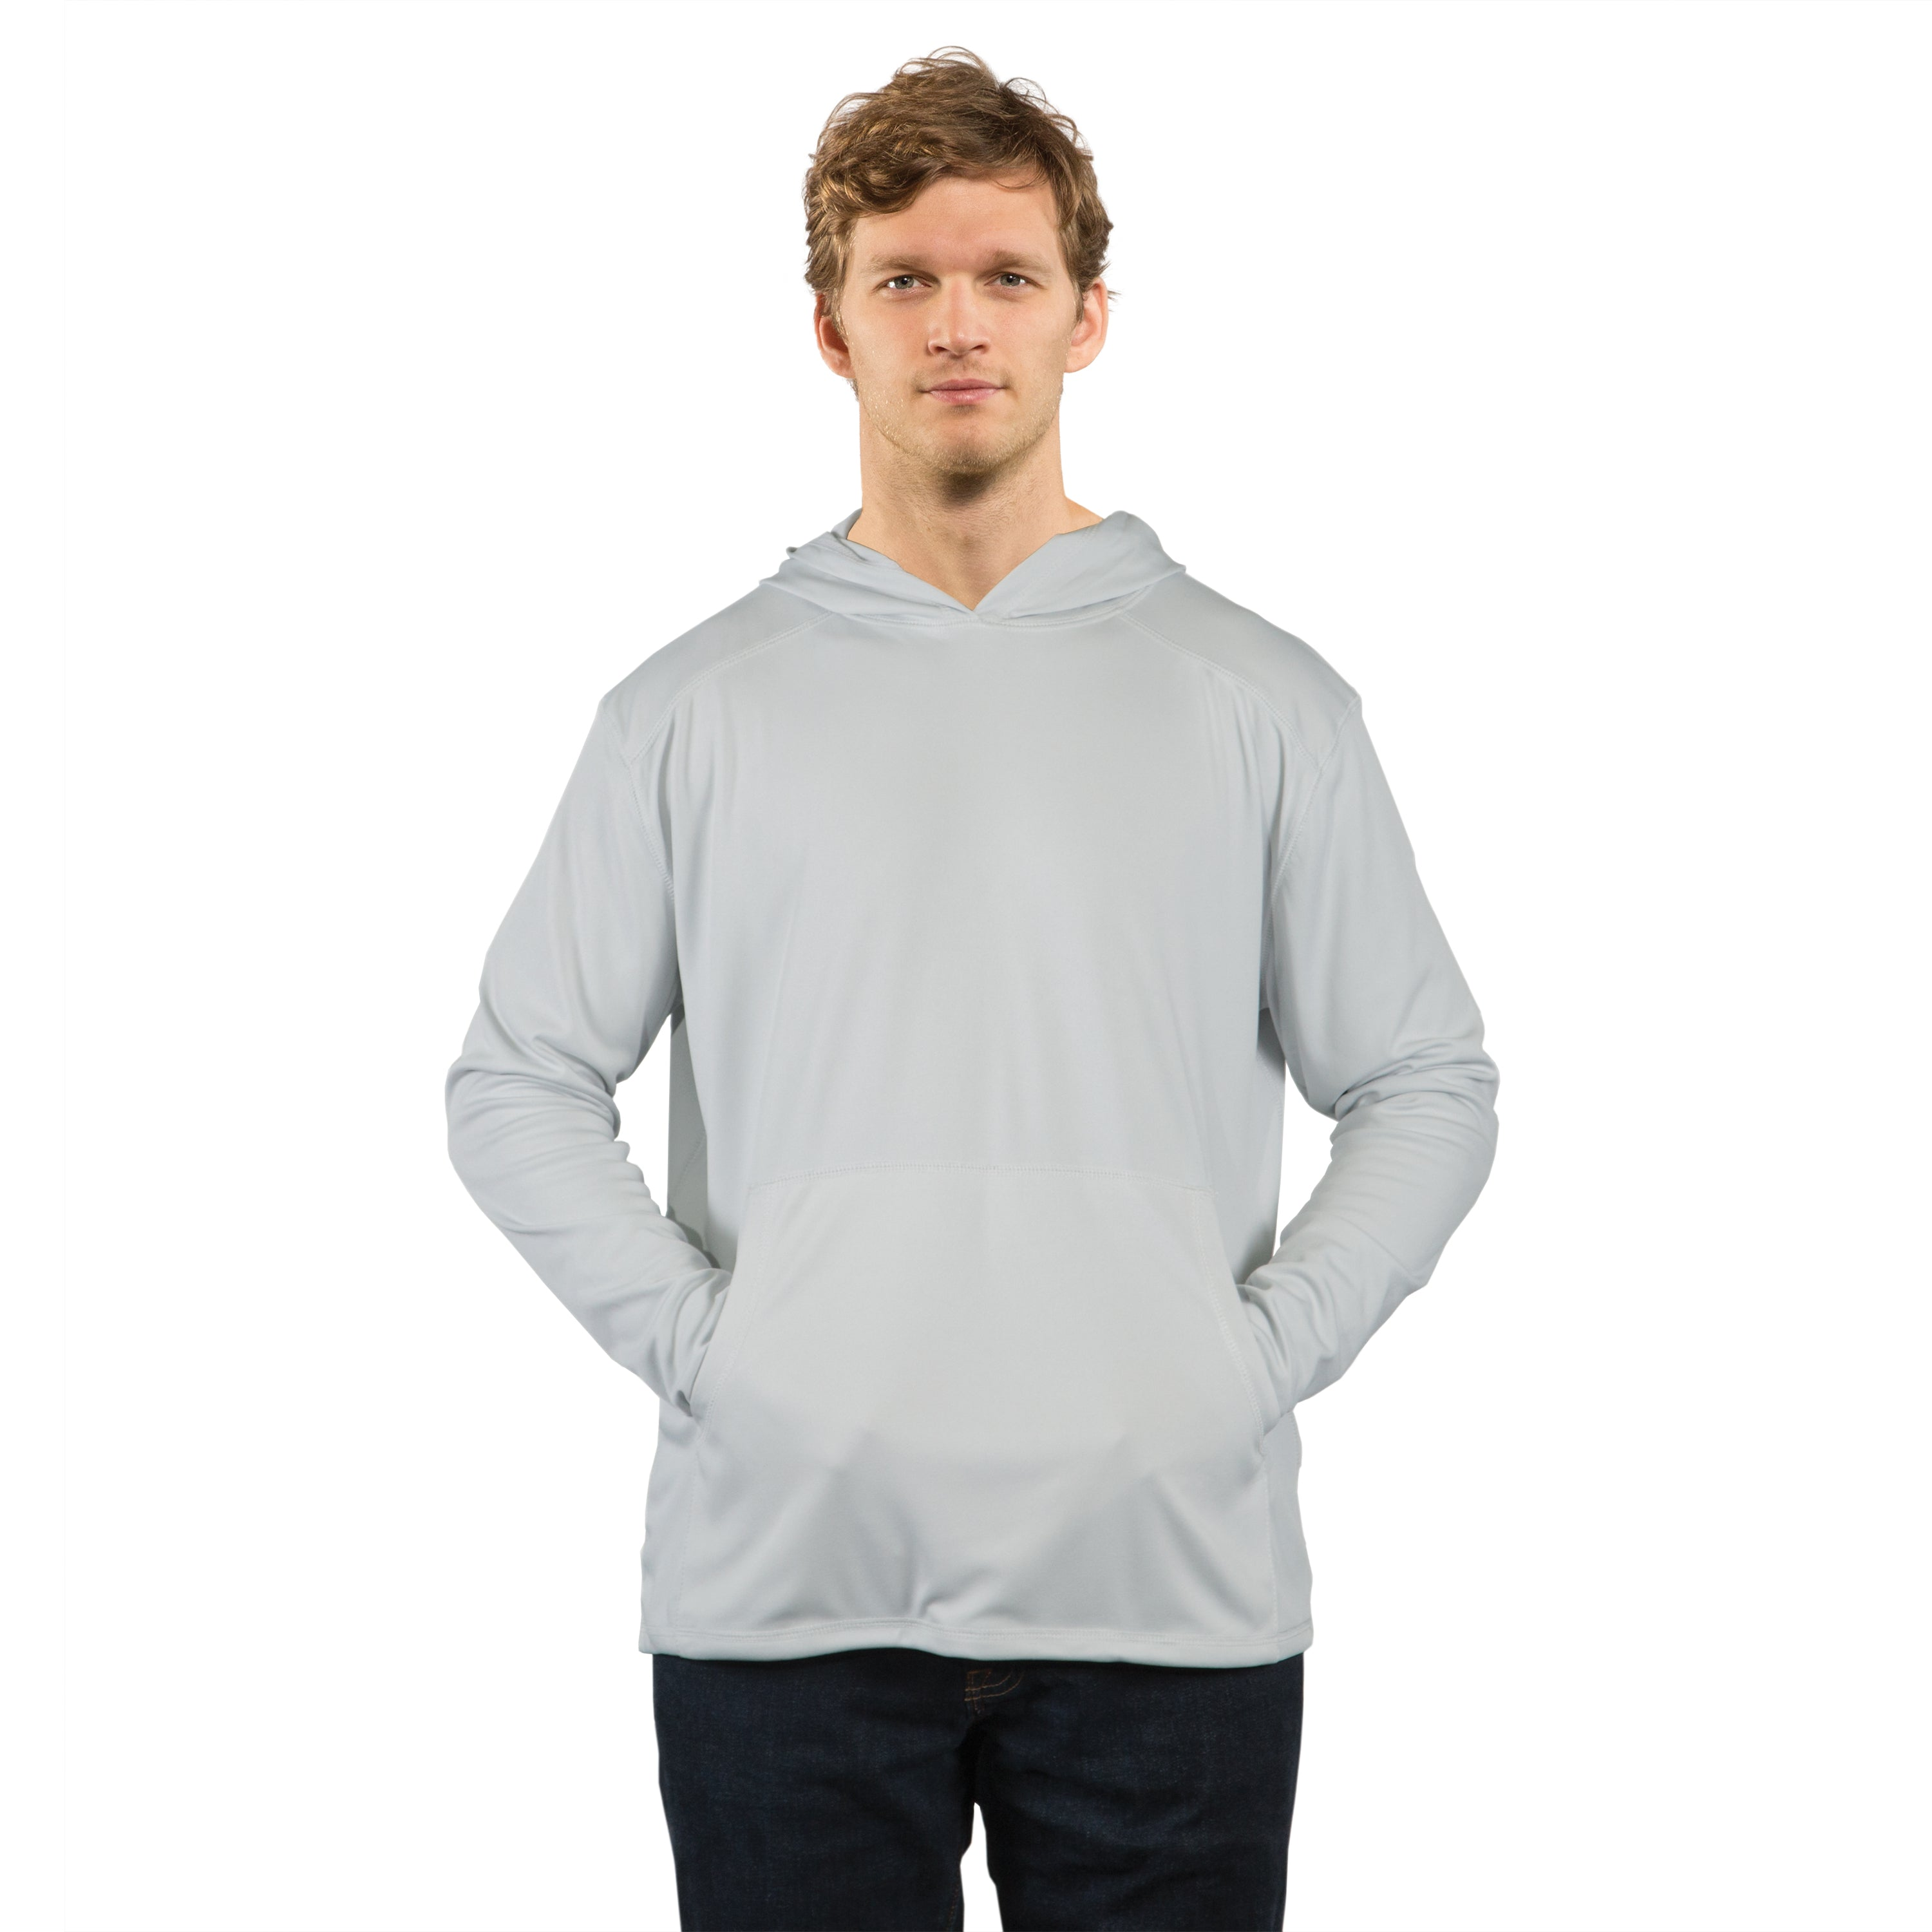 H700PG Solar Hoodie With Pocket - Pearl Grey